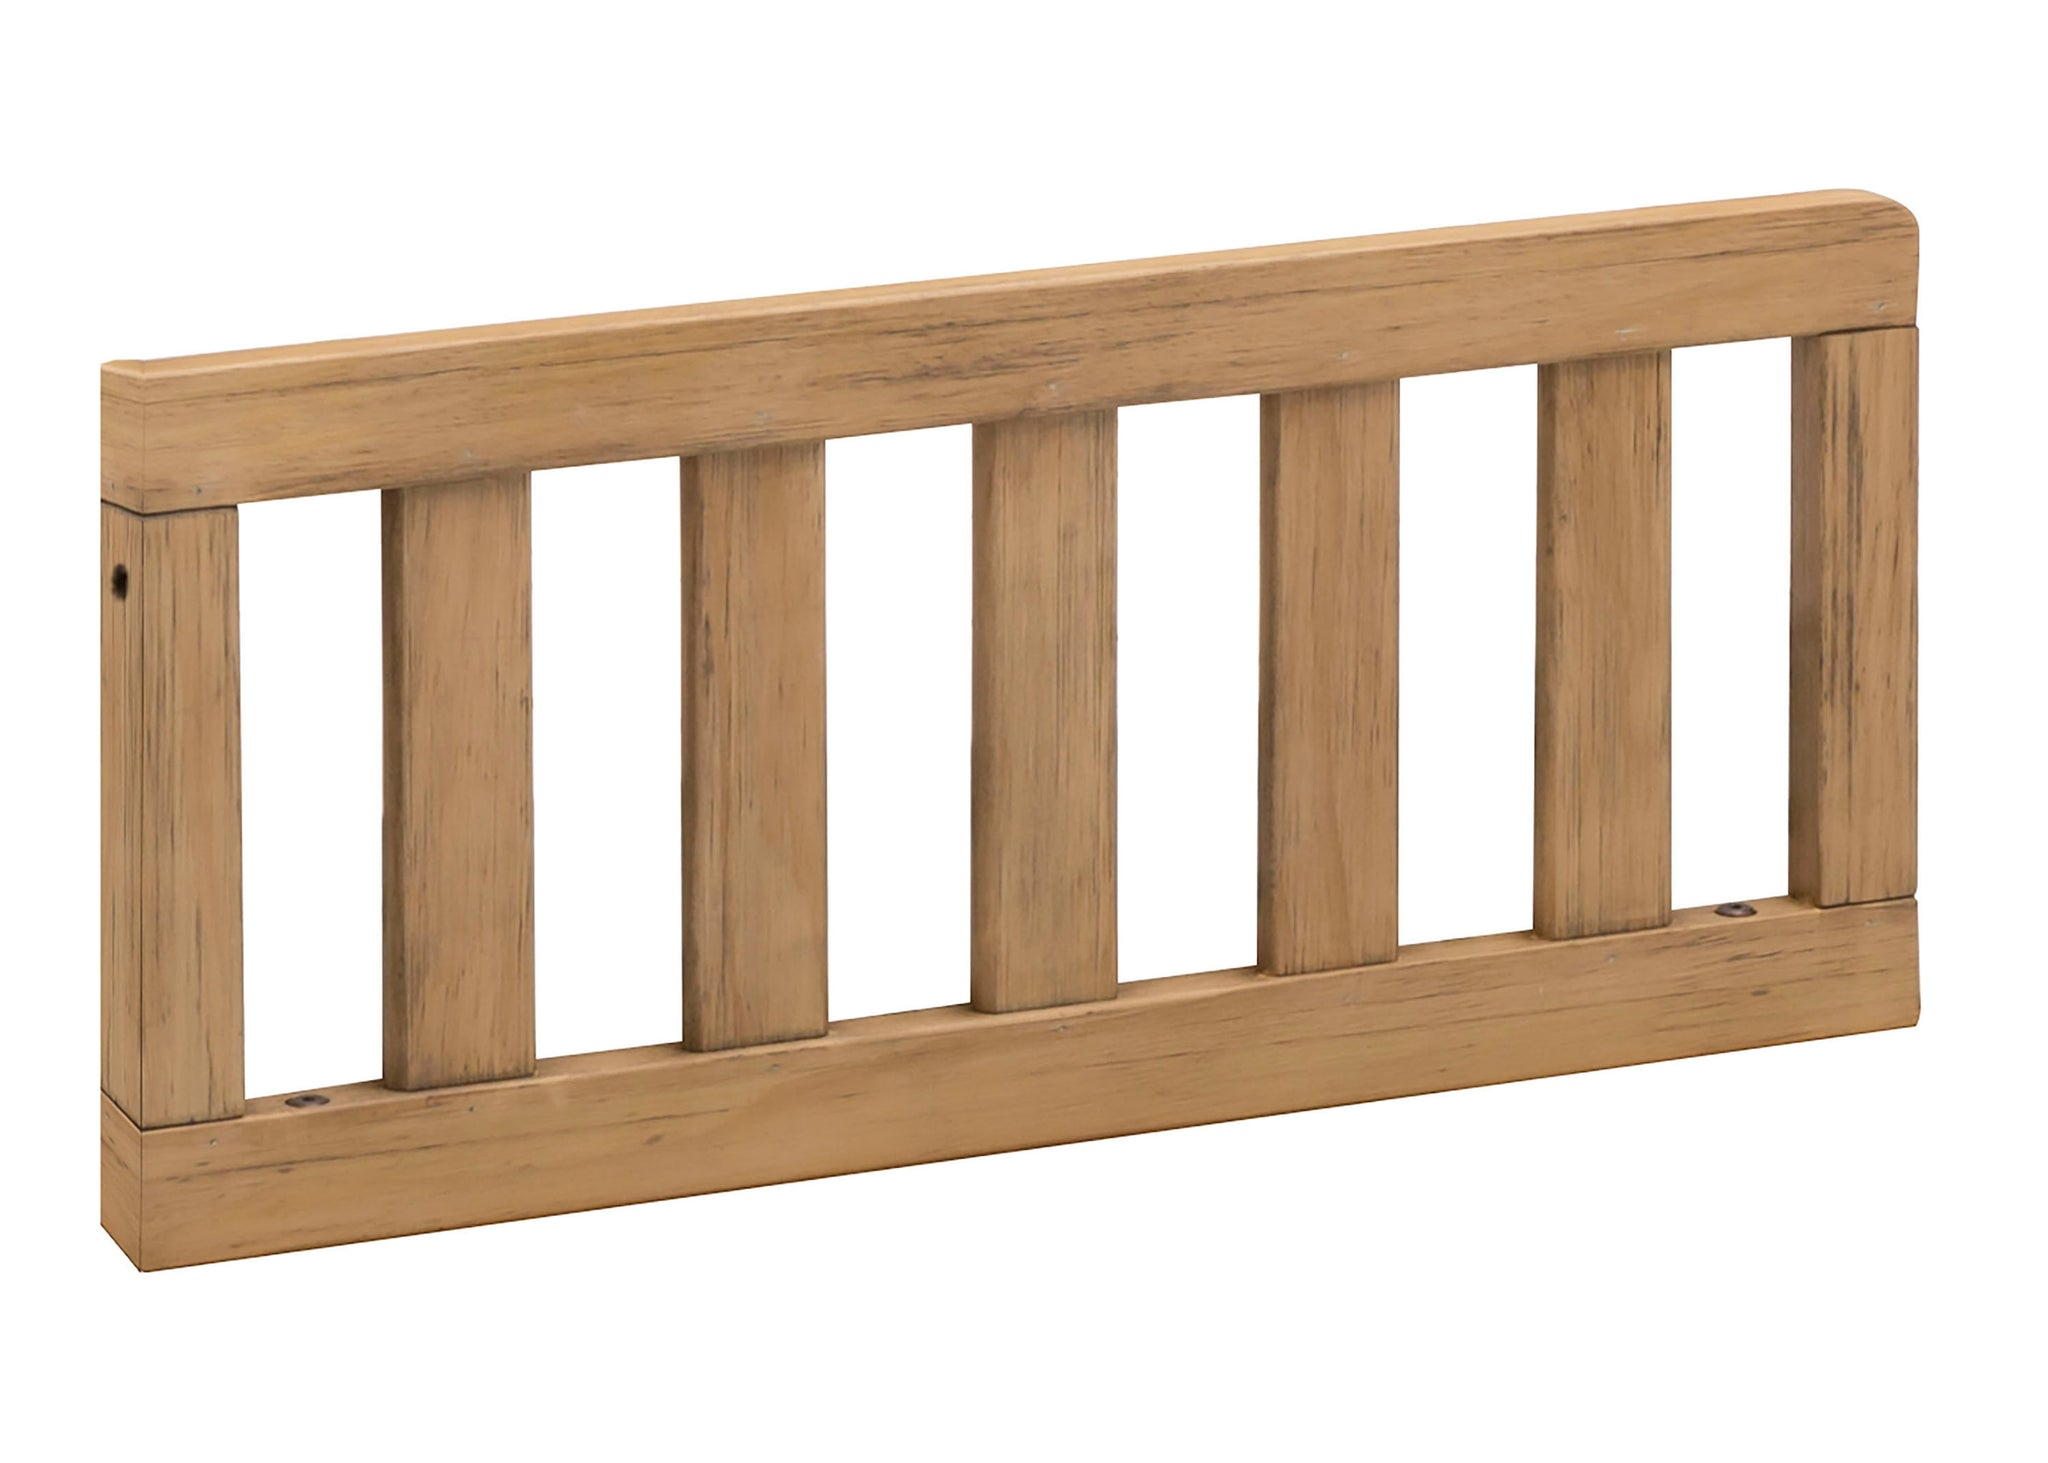 Simmons Kids Rustic Rye (754) Toddler Guardrail (180129), Angled View c1c